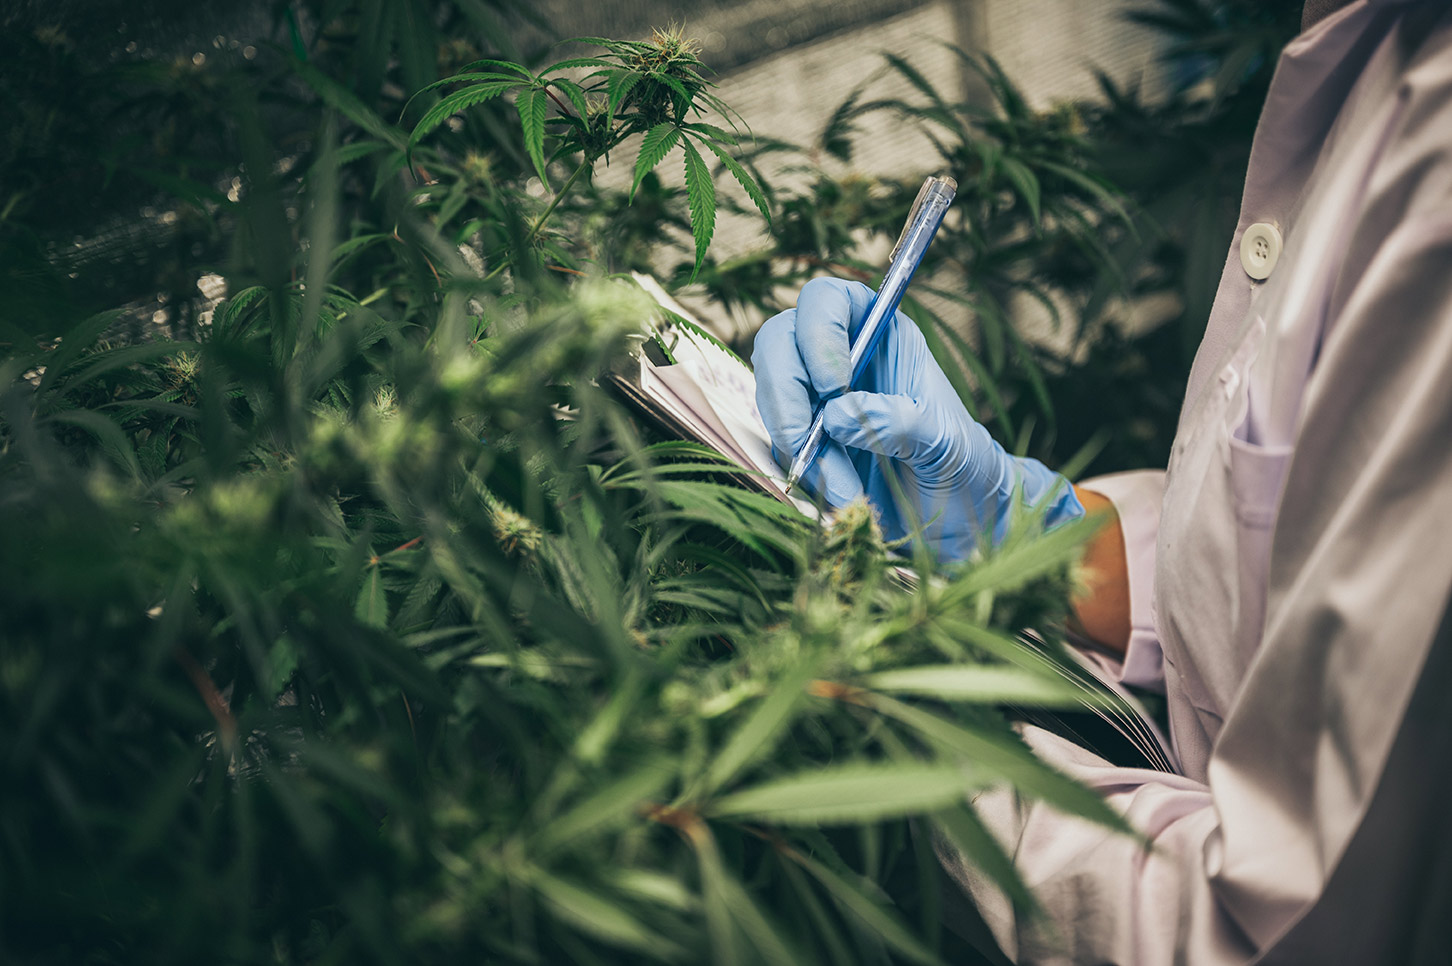 cannabis worker with blue gloved hand taking notes with pen and paper in front of cannabis plant